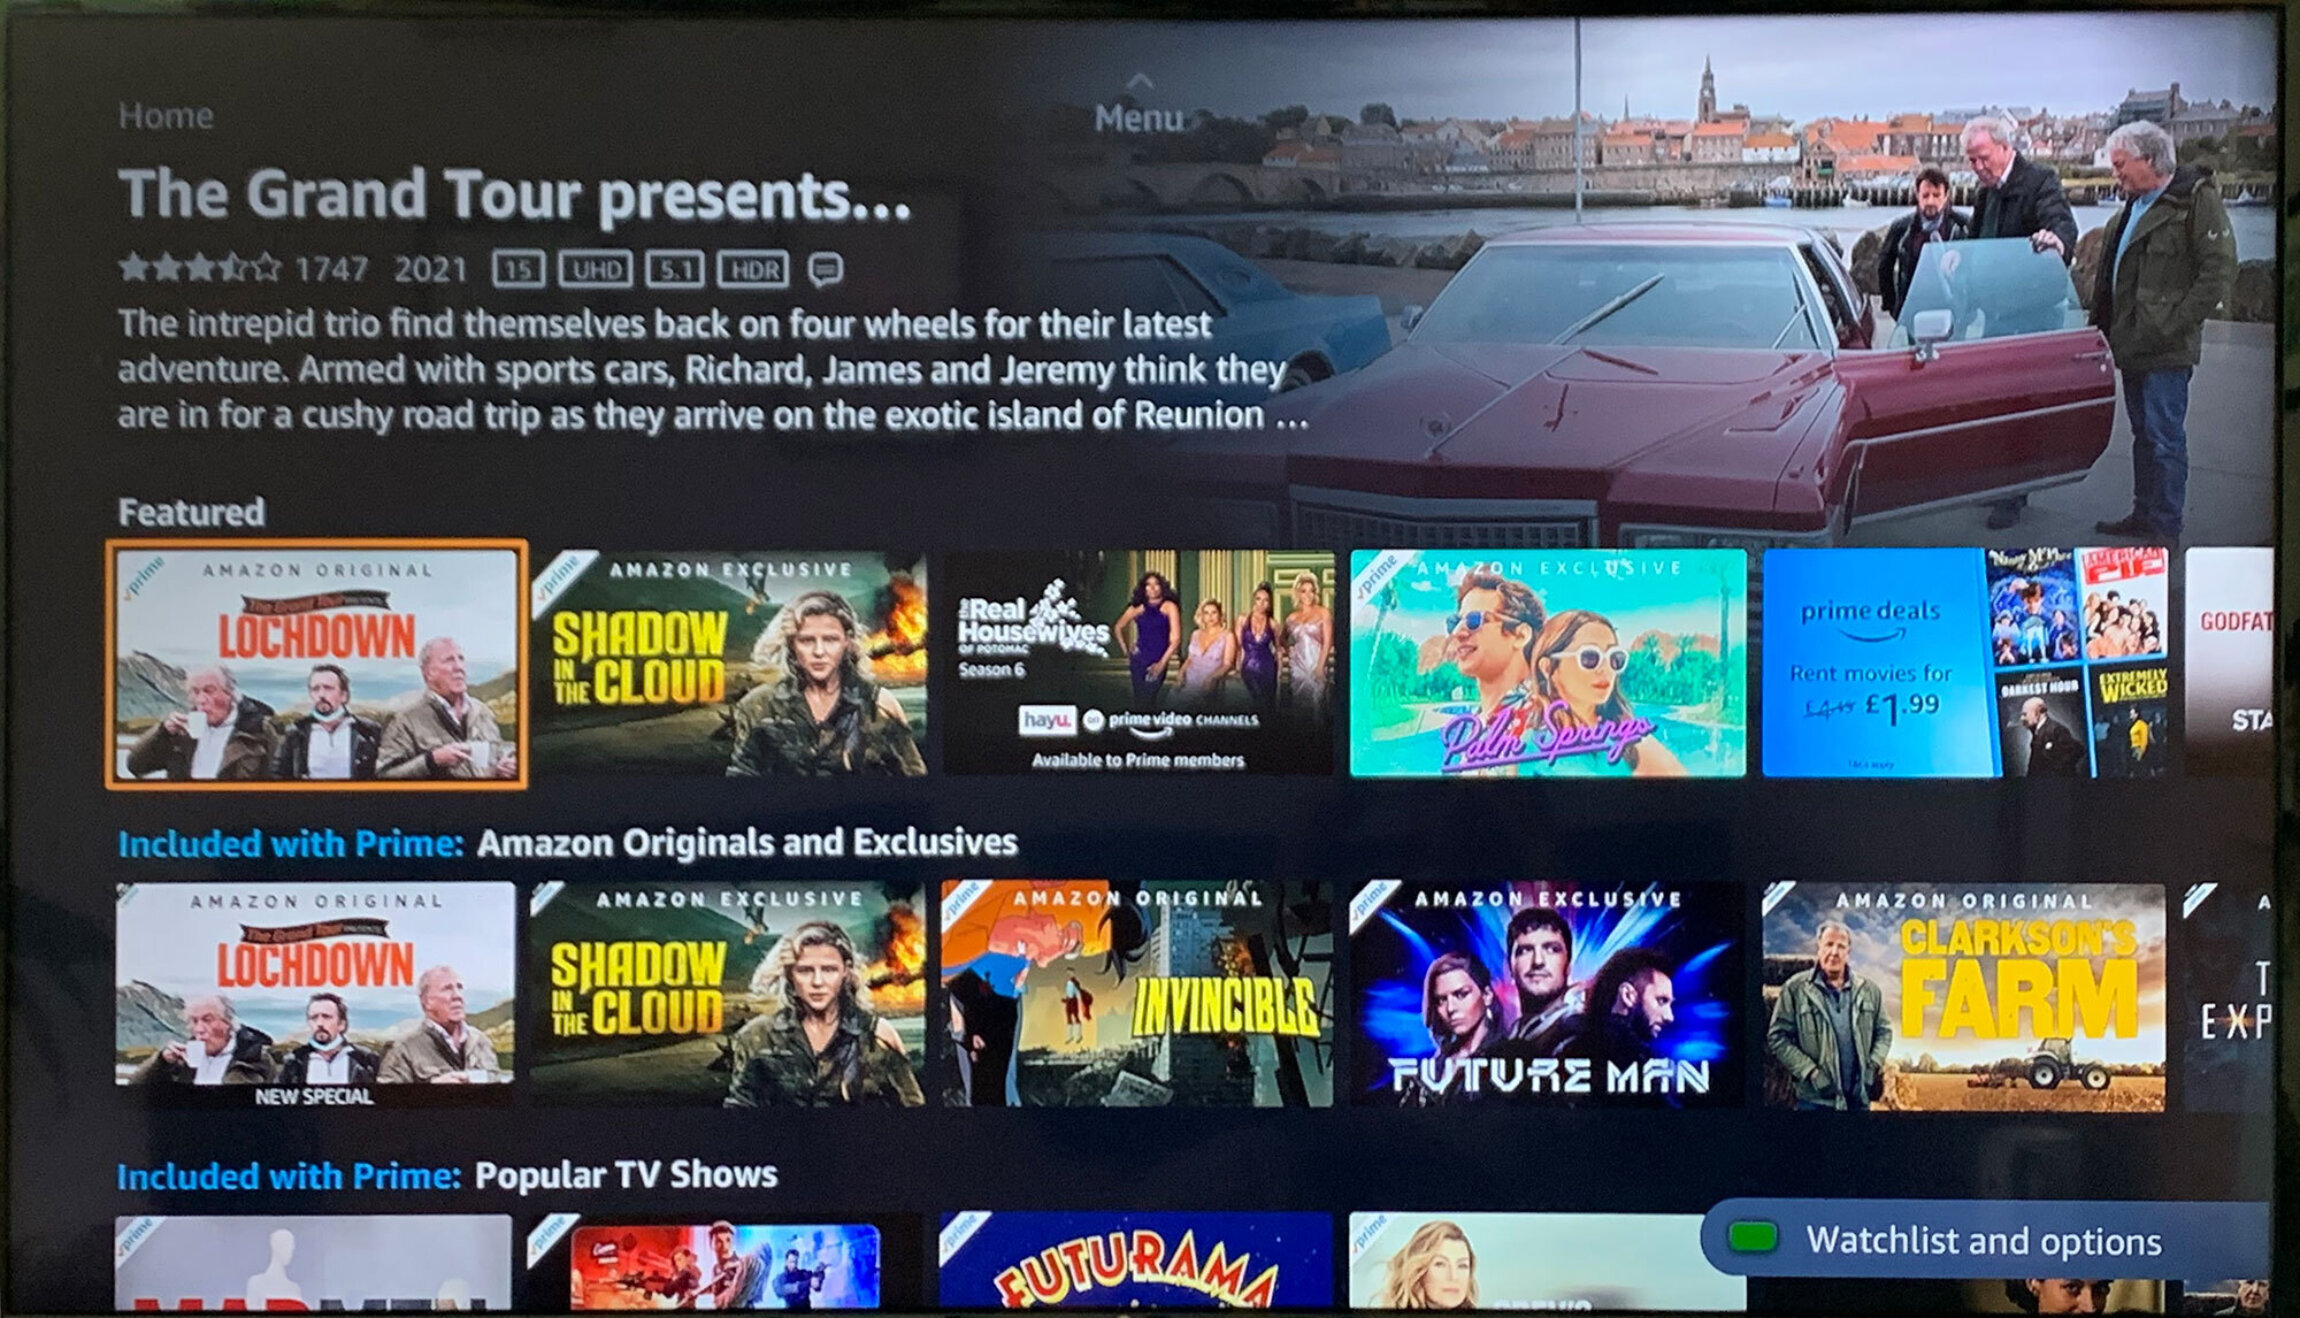 Screenshot of the Amazon Prime Video homepage showing Grand Tour content three times, about a quarter of the shows on display..